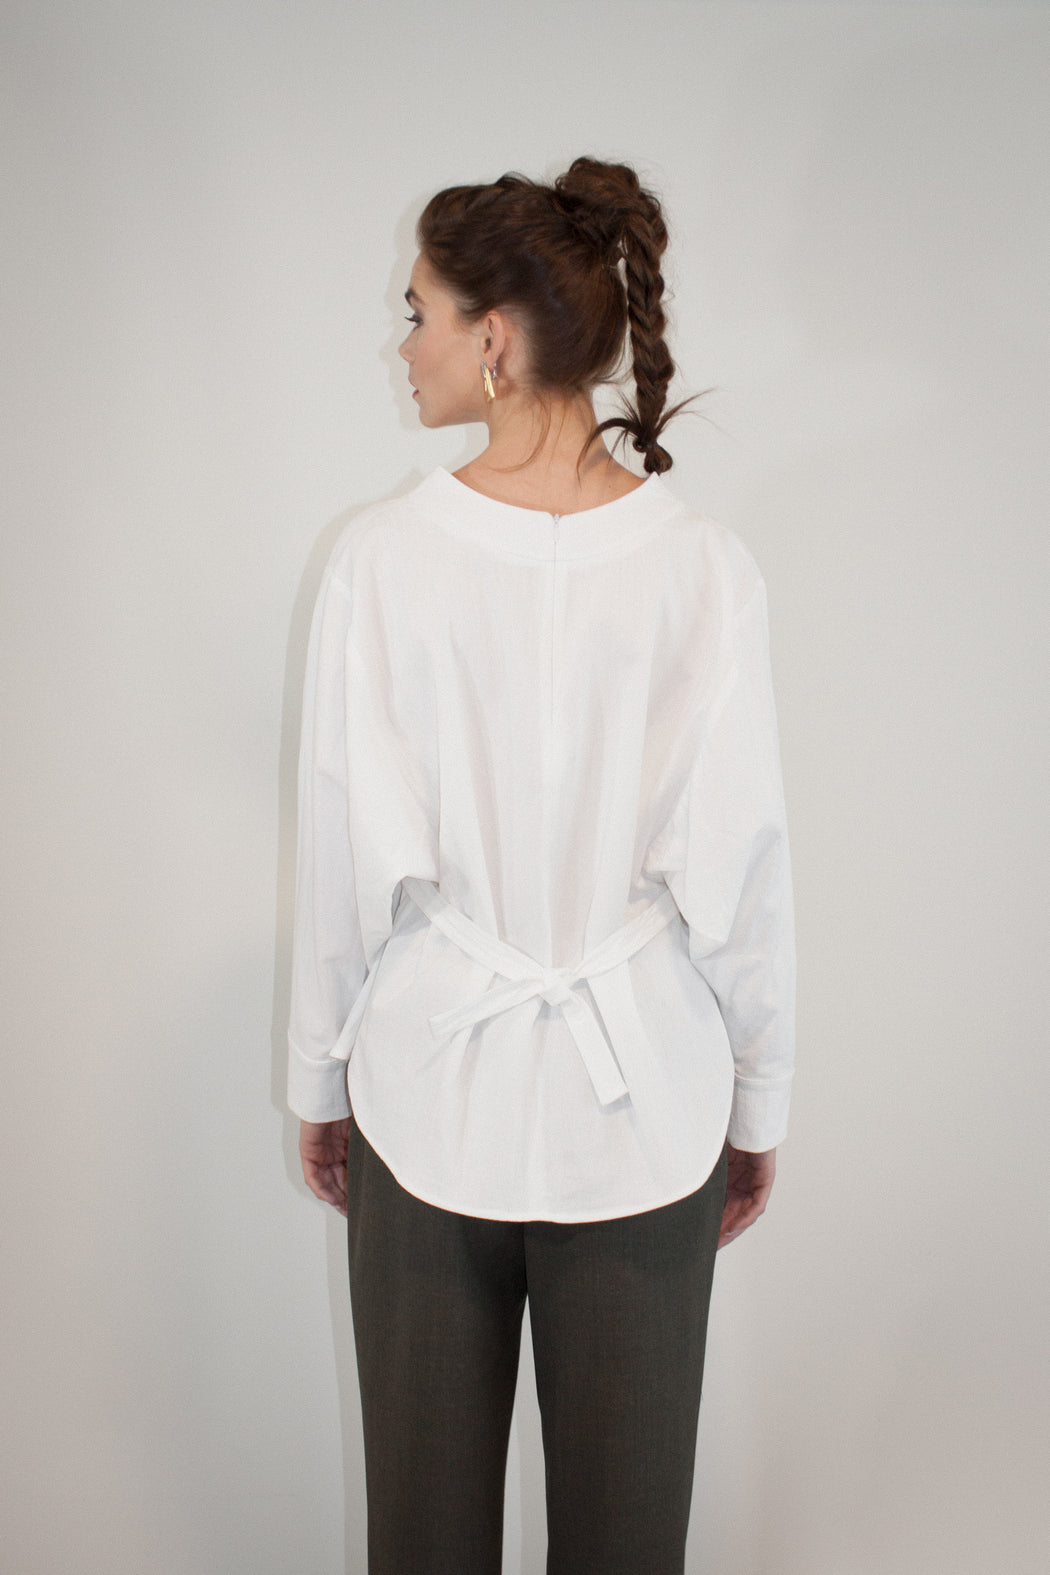 Joeleen Torvick | Jubilee Blouse | White | Hazel & Rose | Minneapolis